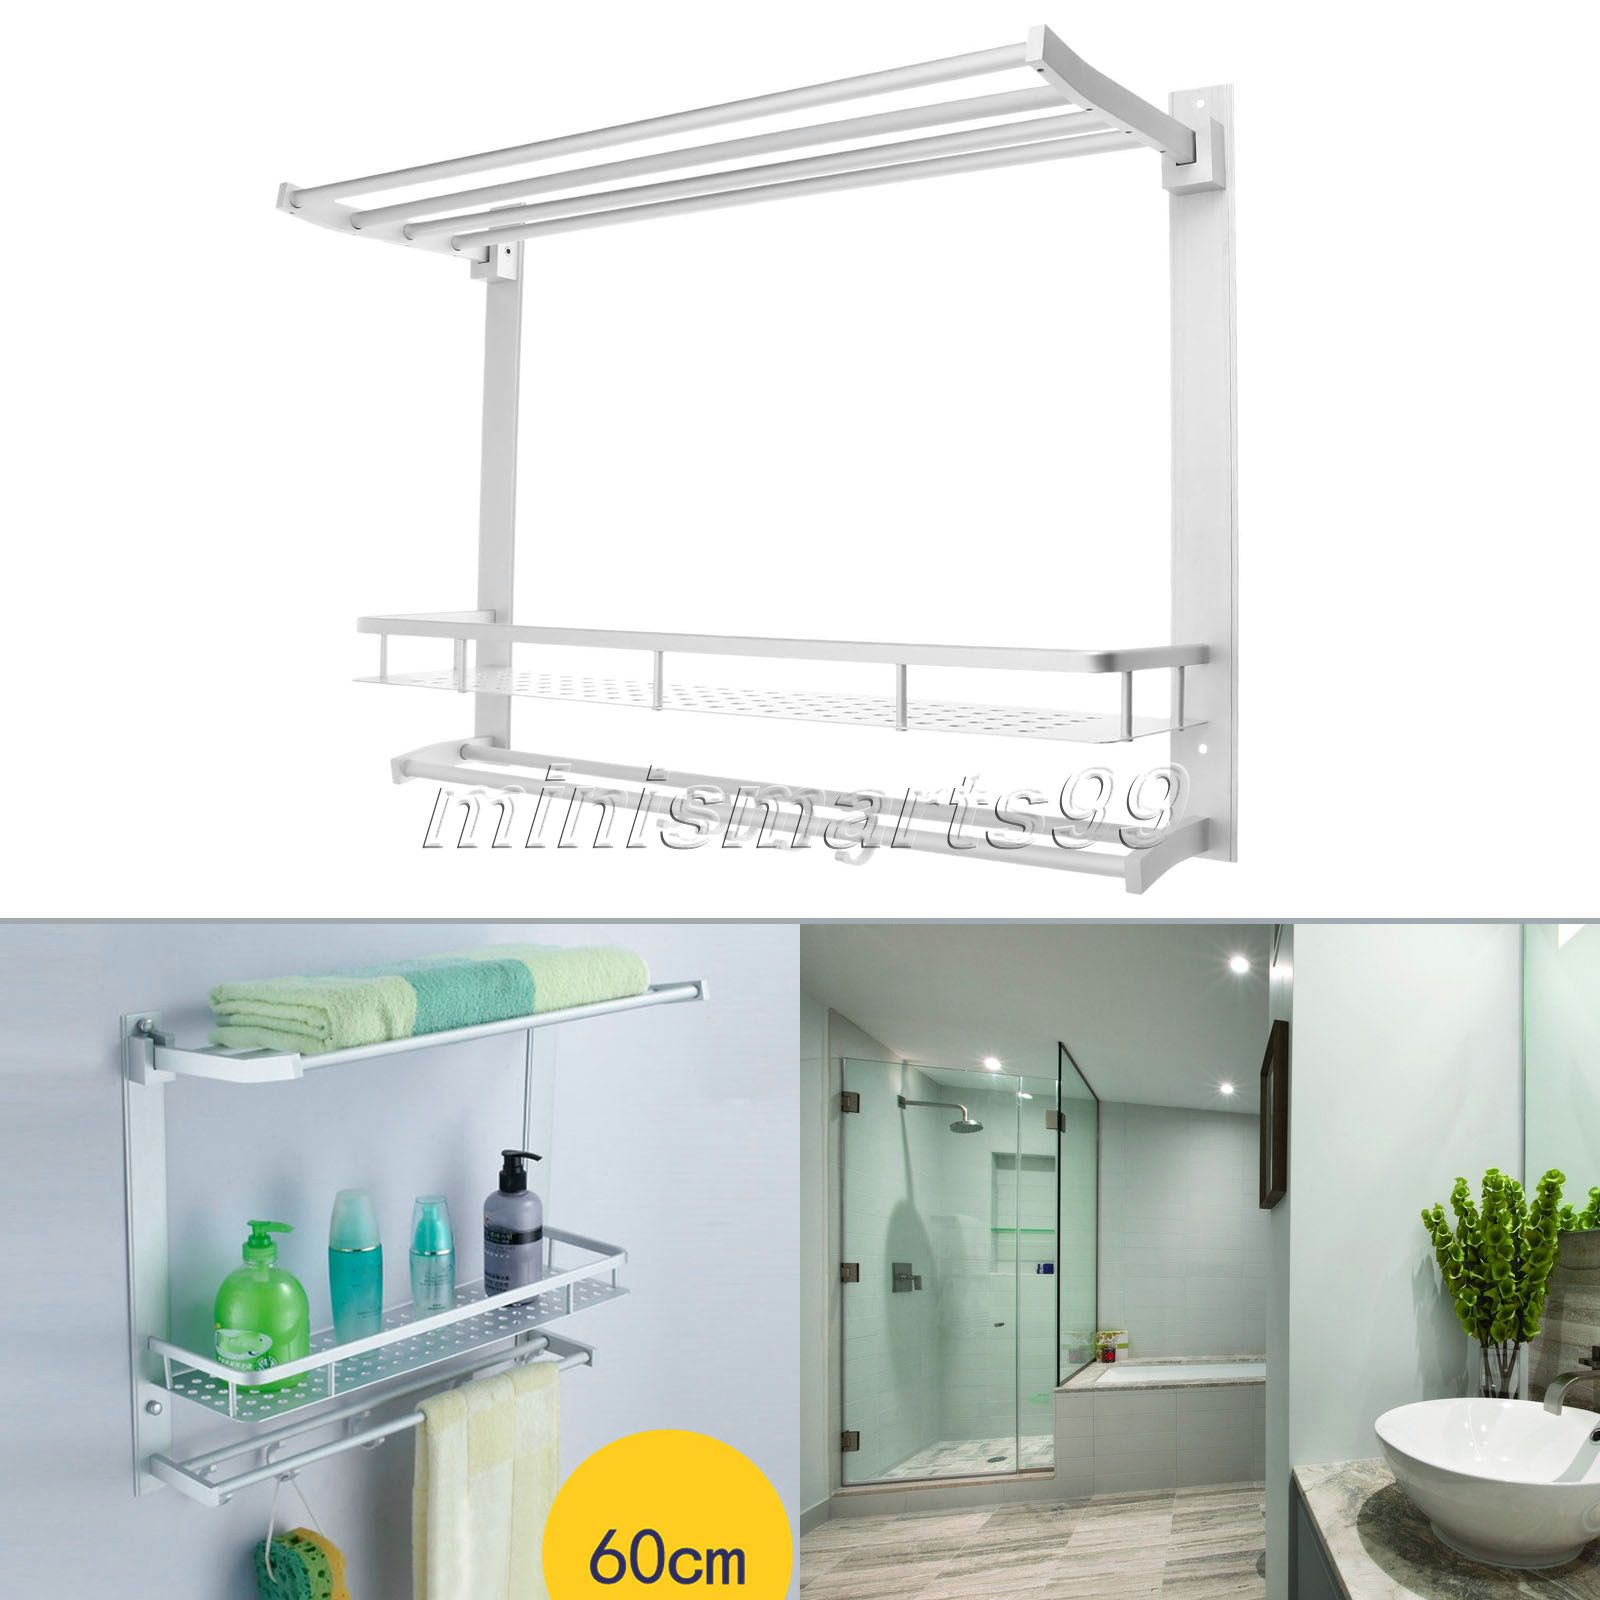 60CM Double Layers Aluminum Bathroom Rack Towel Shelves Washing Shower  Basket Bathroom Accessories Shampoo Holder+Towel Bar+Hook In Bathroom  Accessories ...